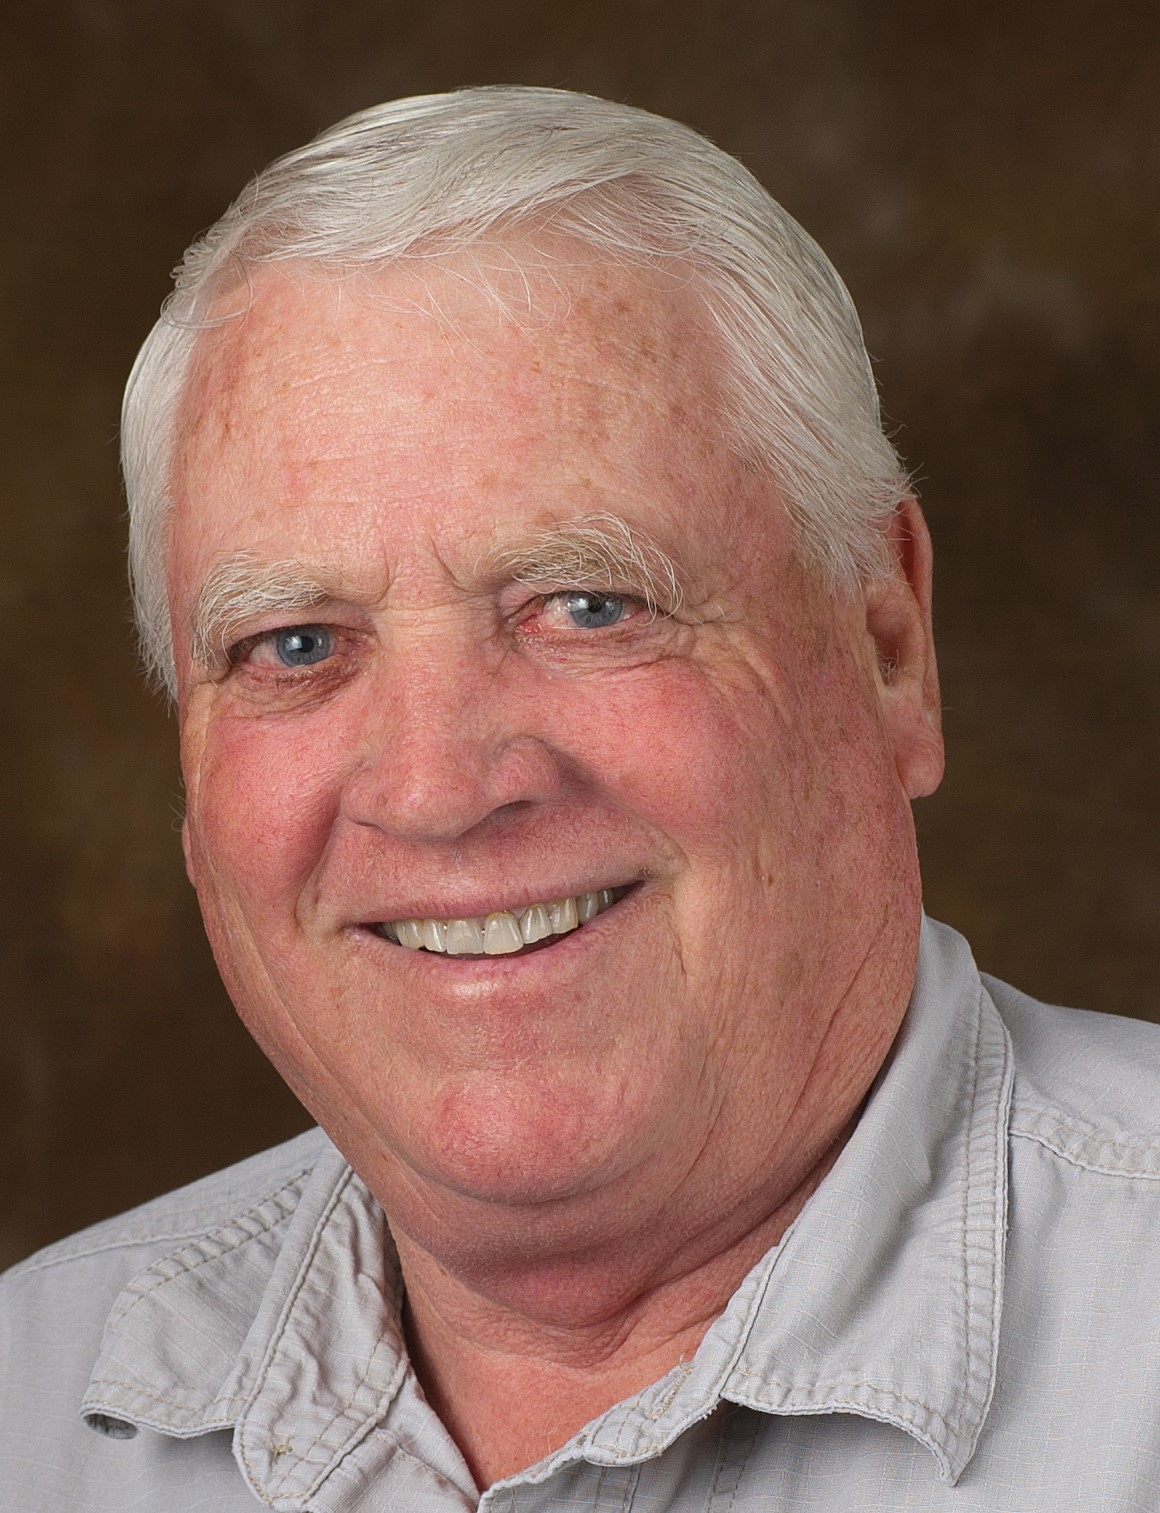 Charlie A. Bean, age 75 of Cozad